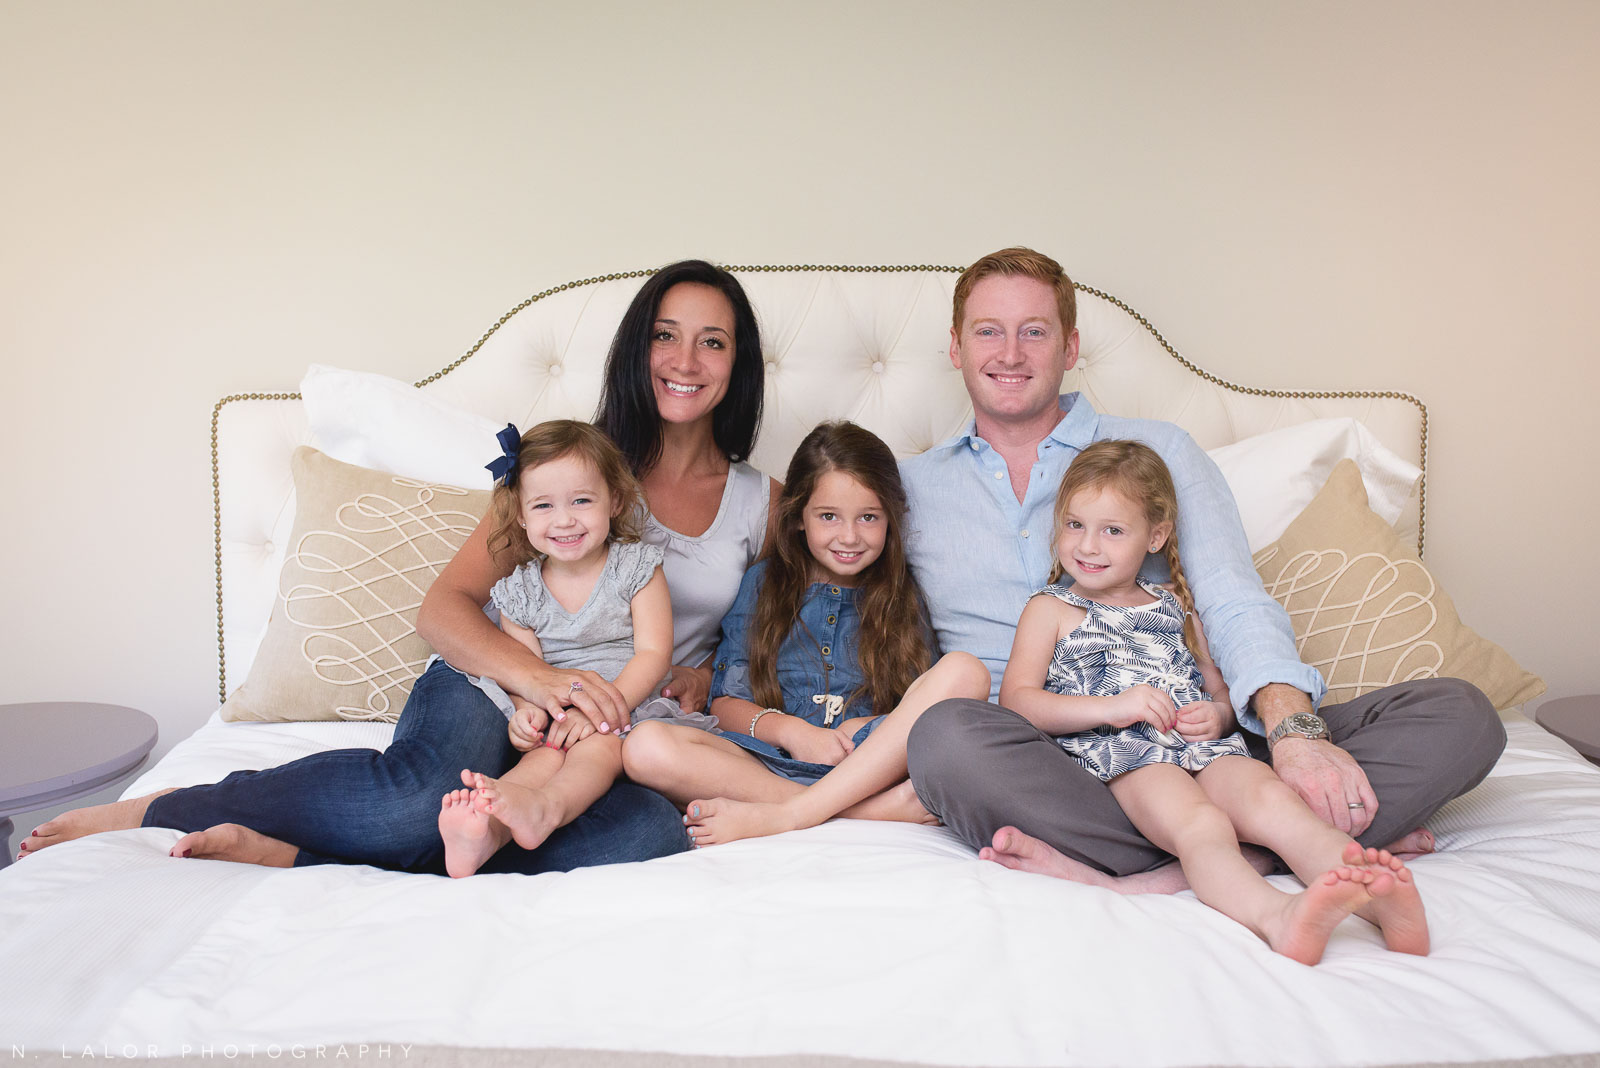 A lifestyle photo of a happy smiling family of 5. Naturally styled family photo by N. Lalor Photography.